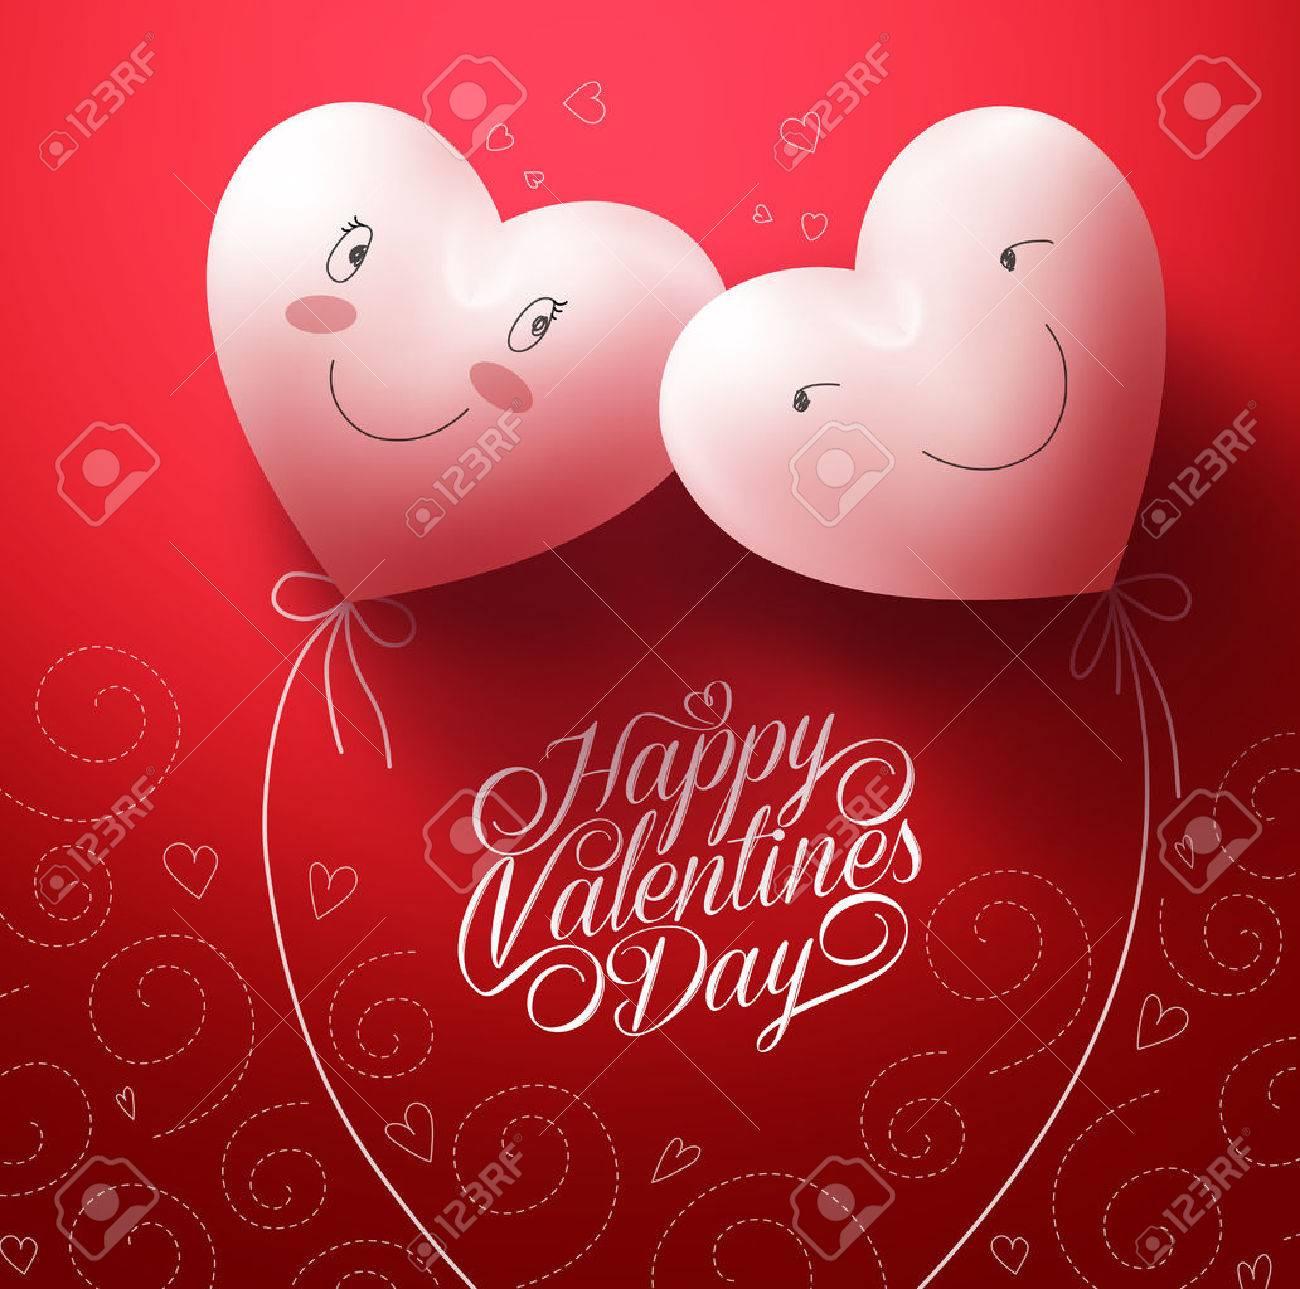 Two White Hearts Inlove with Happy Face for Valentines day Greetings Card with Pattern Red Background. Vector Illustration - 50818486